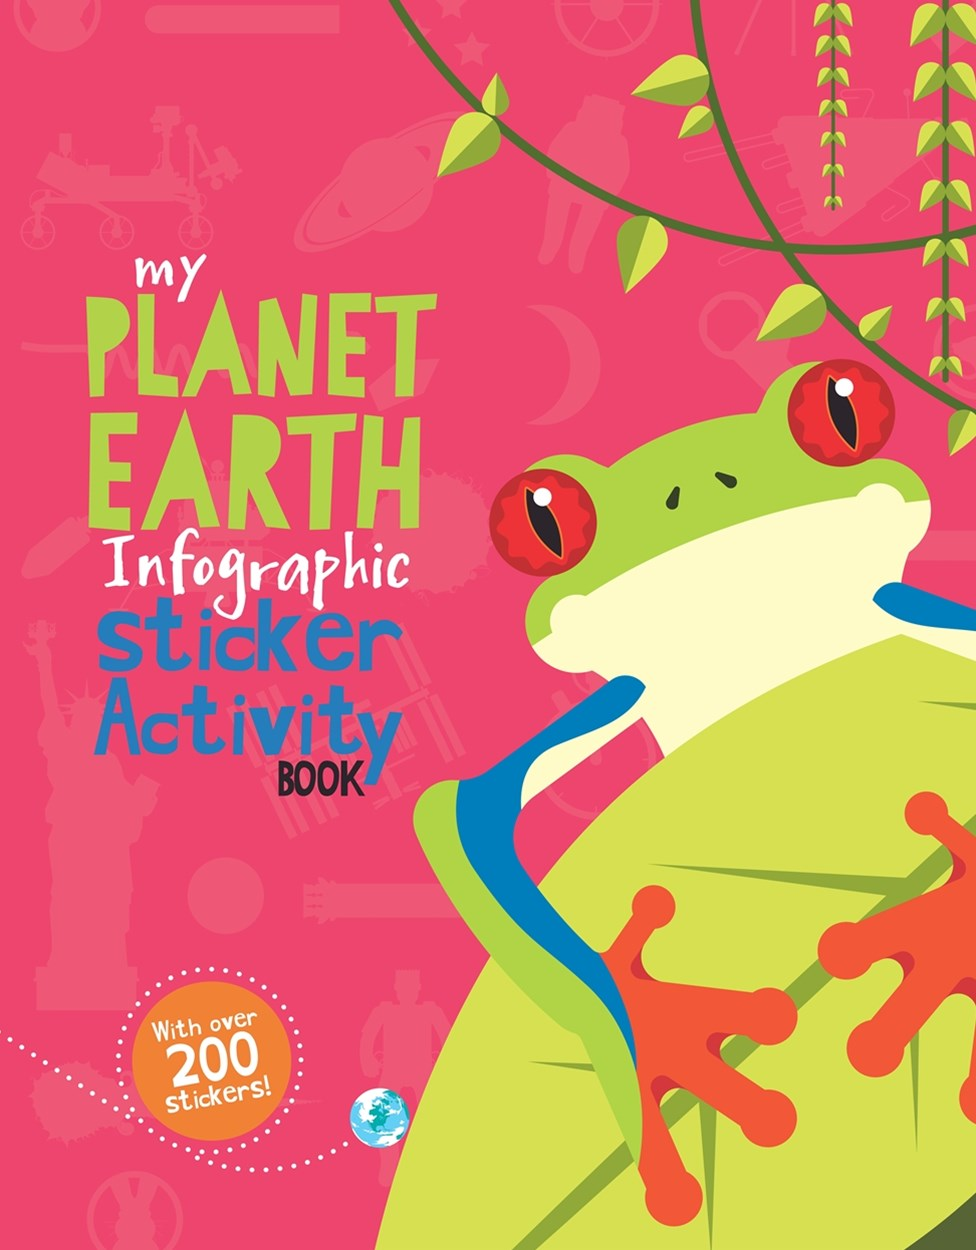 My Planet Earth Infographic Sticker Activity Book